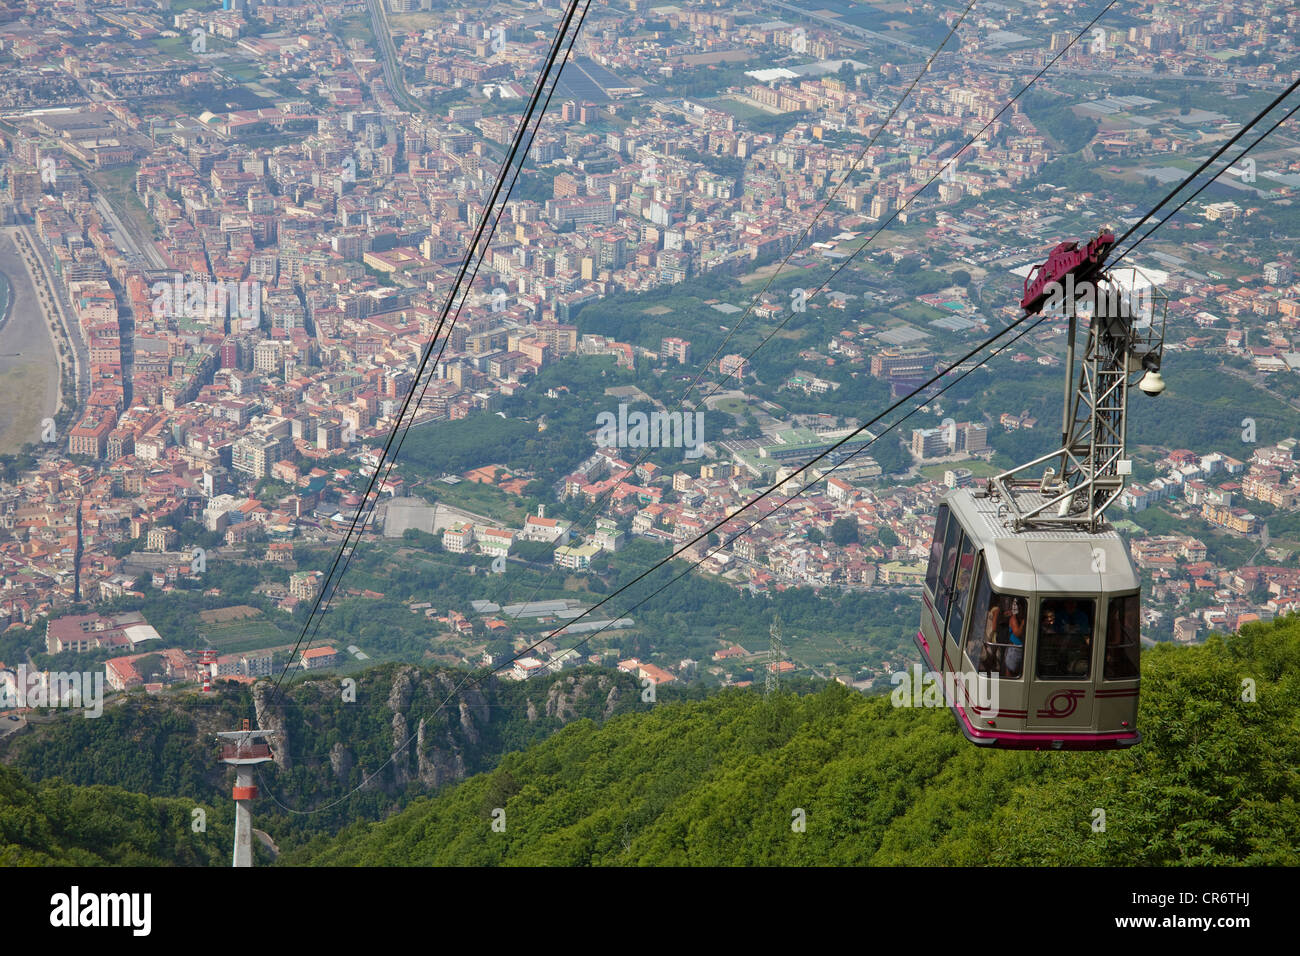 High Ropeway Stock Photos & High Ropeway Stock Images - Alamy